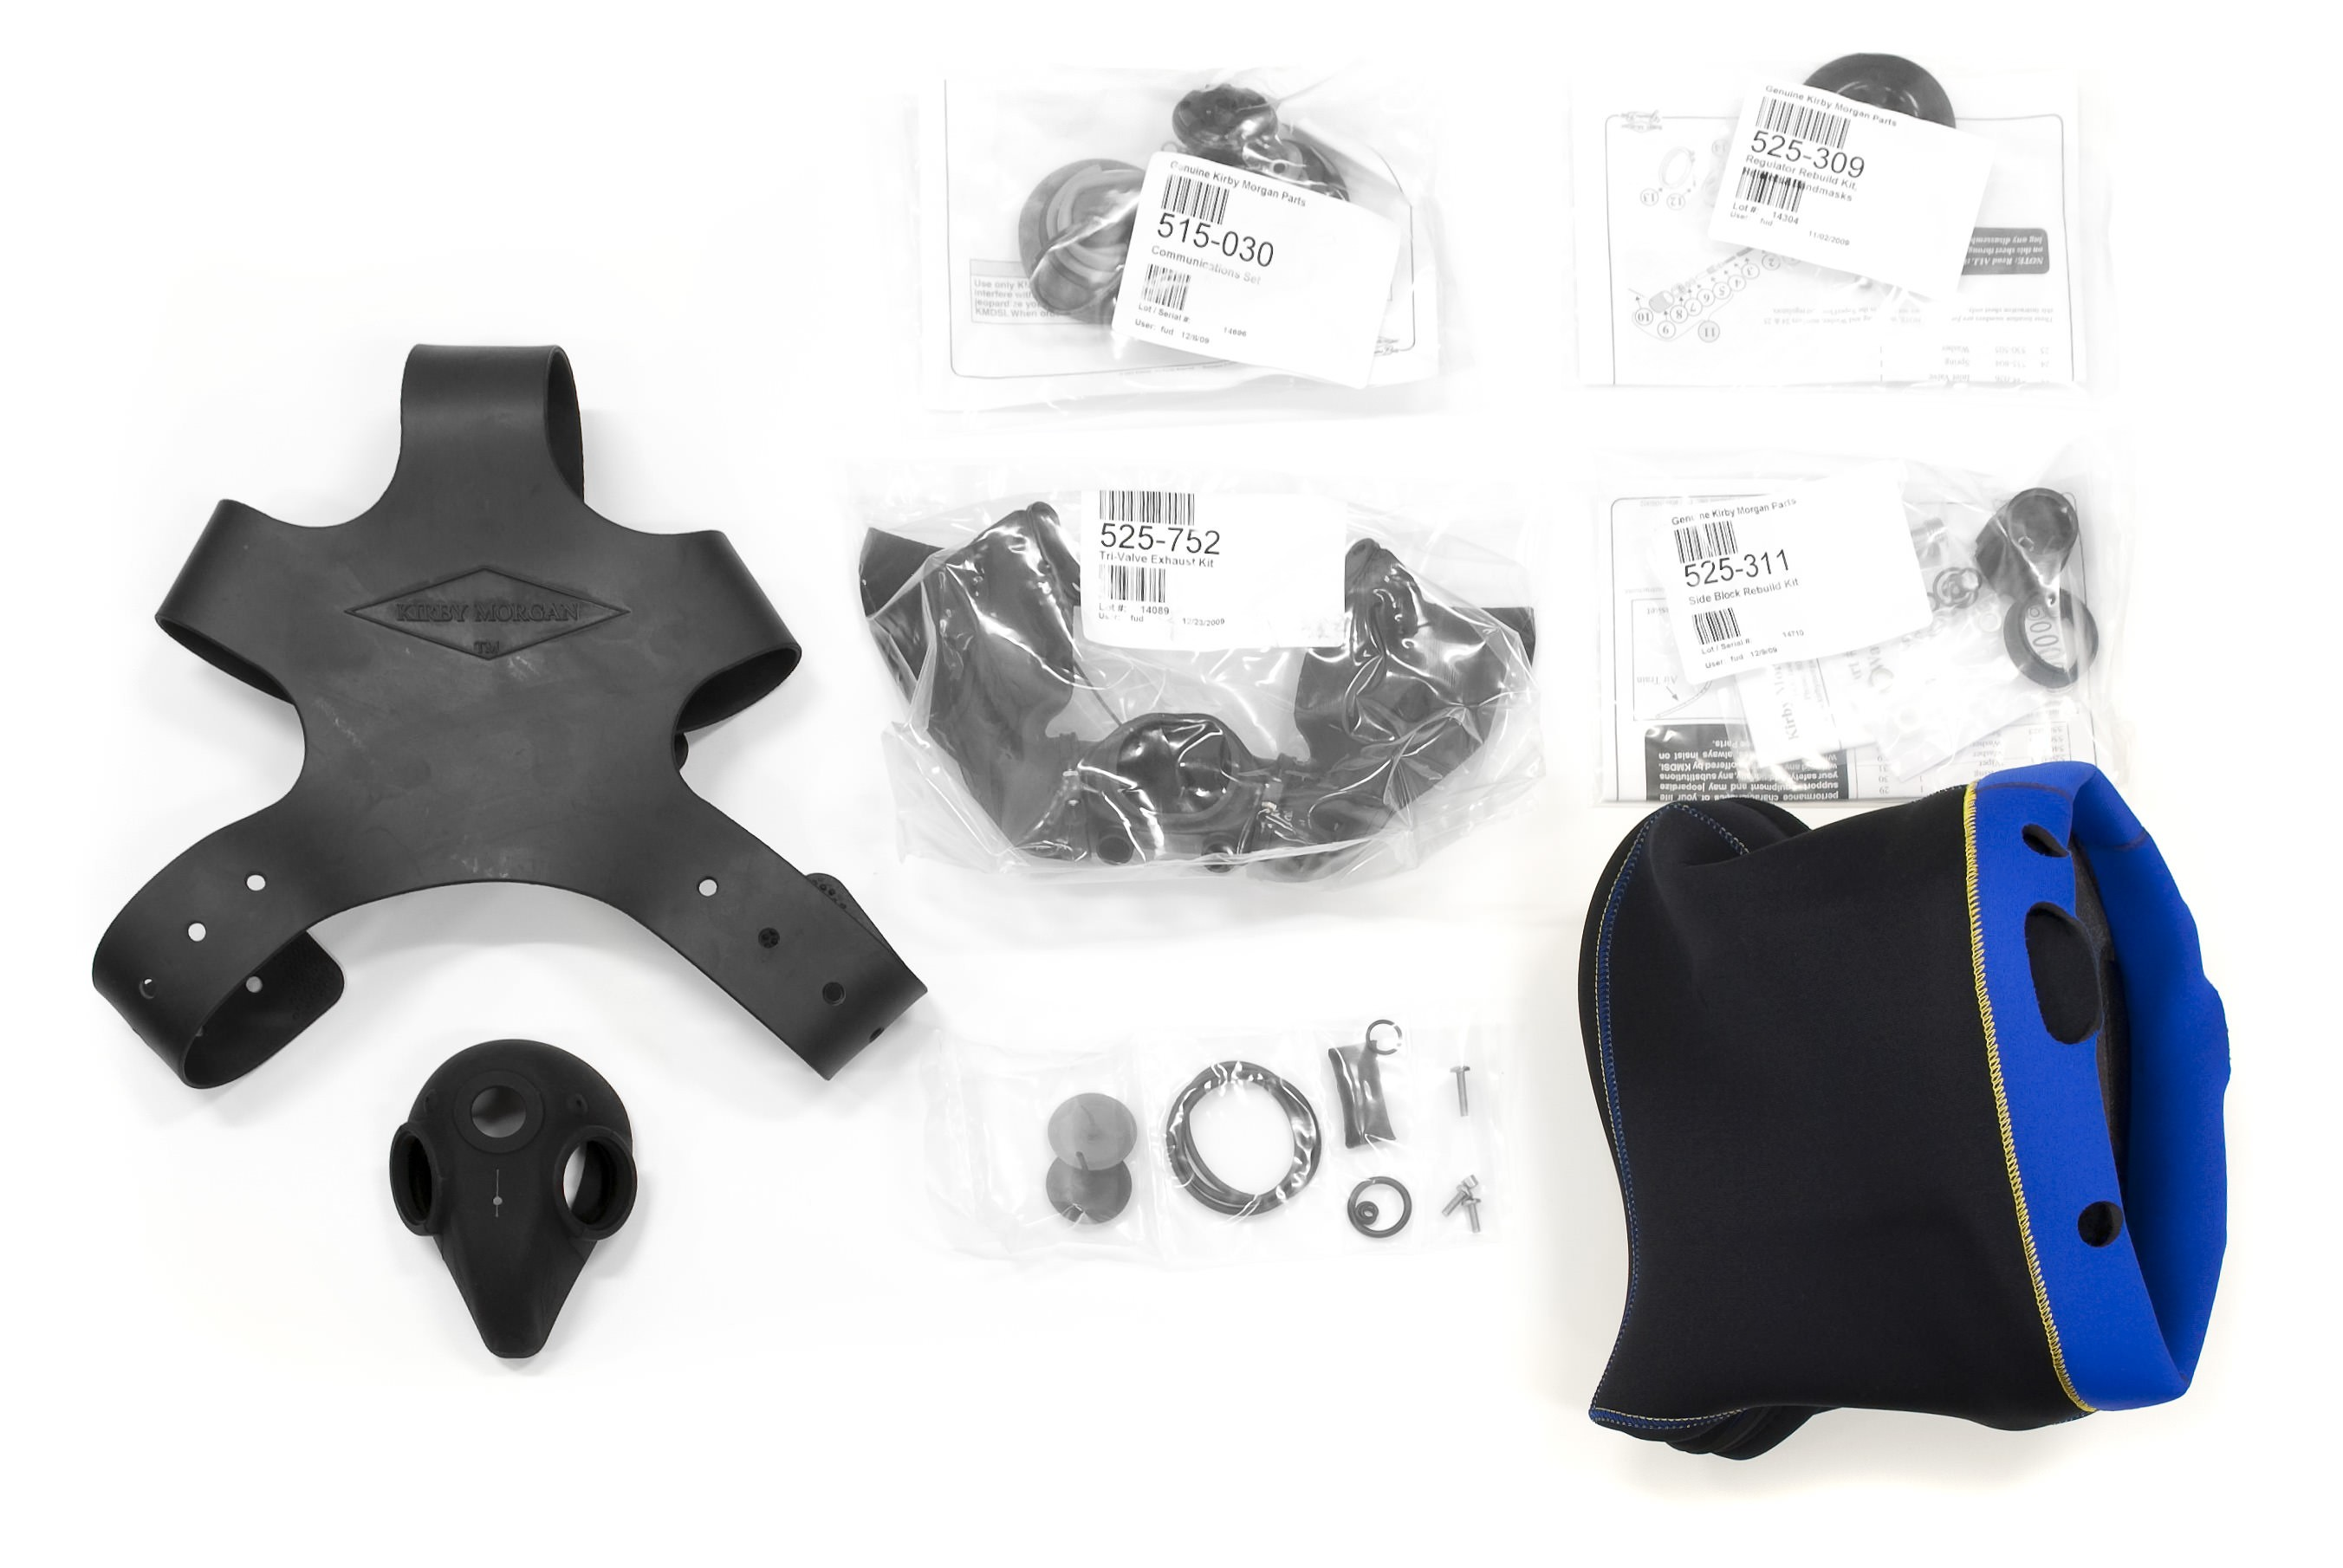 Kirby Morgan Mask Spares Kit for KMB 18 and 28 BandMasks® 525-319